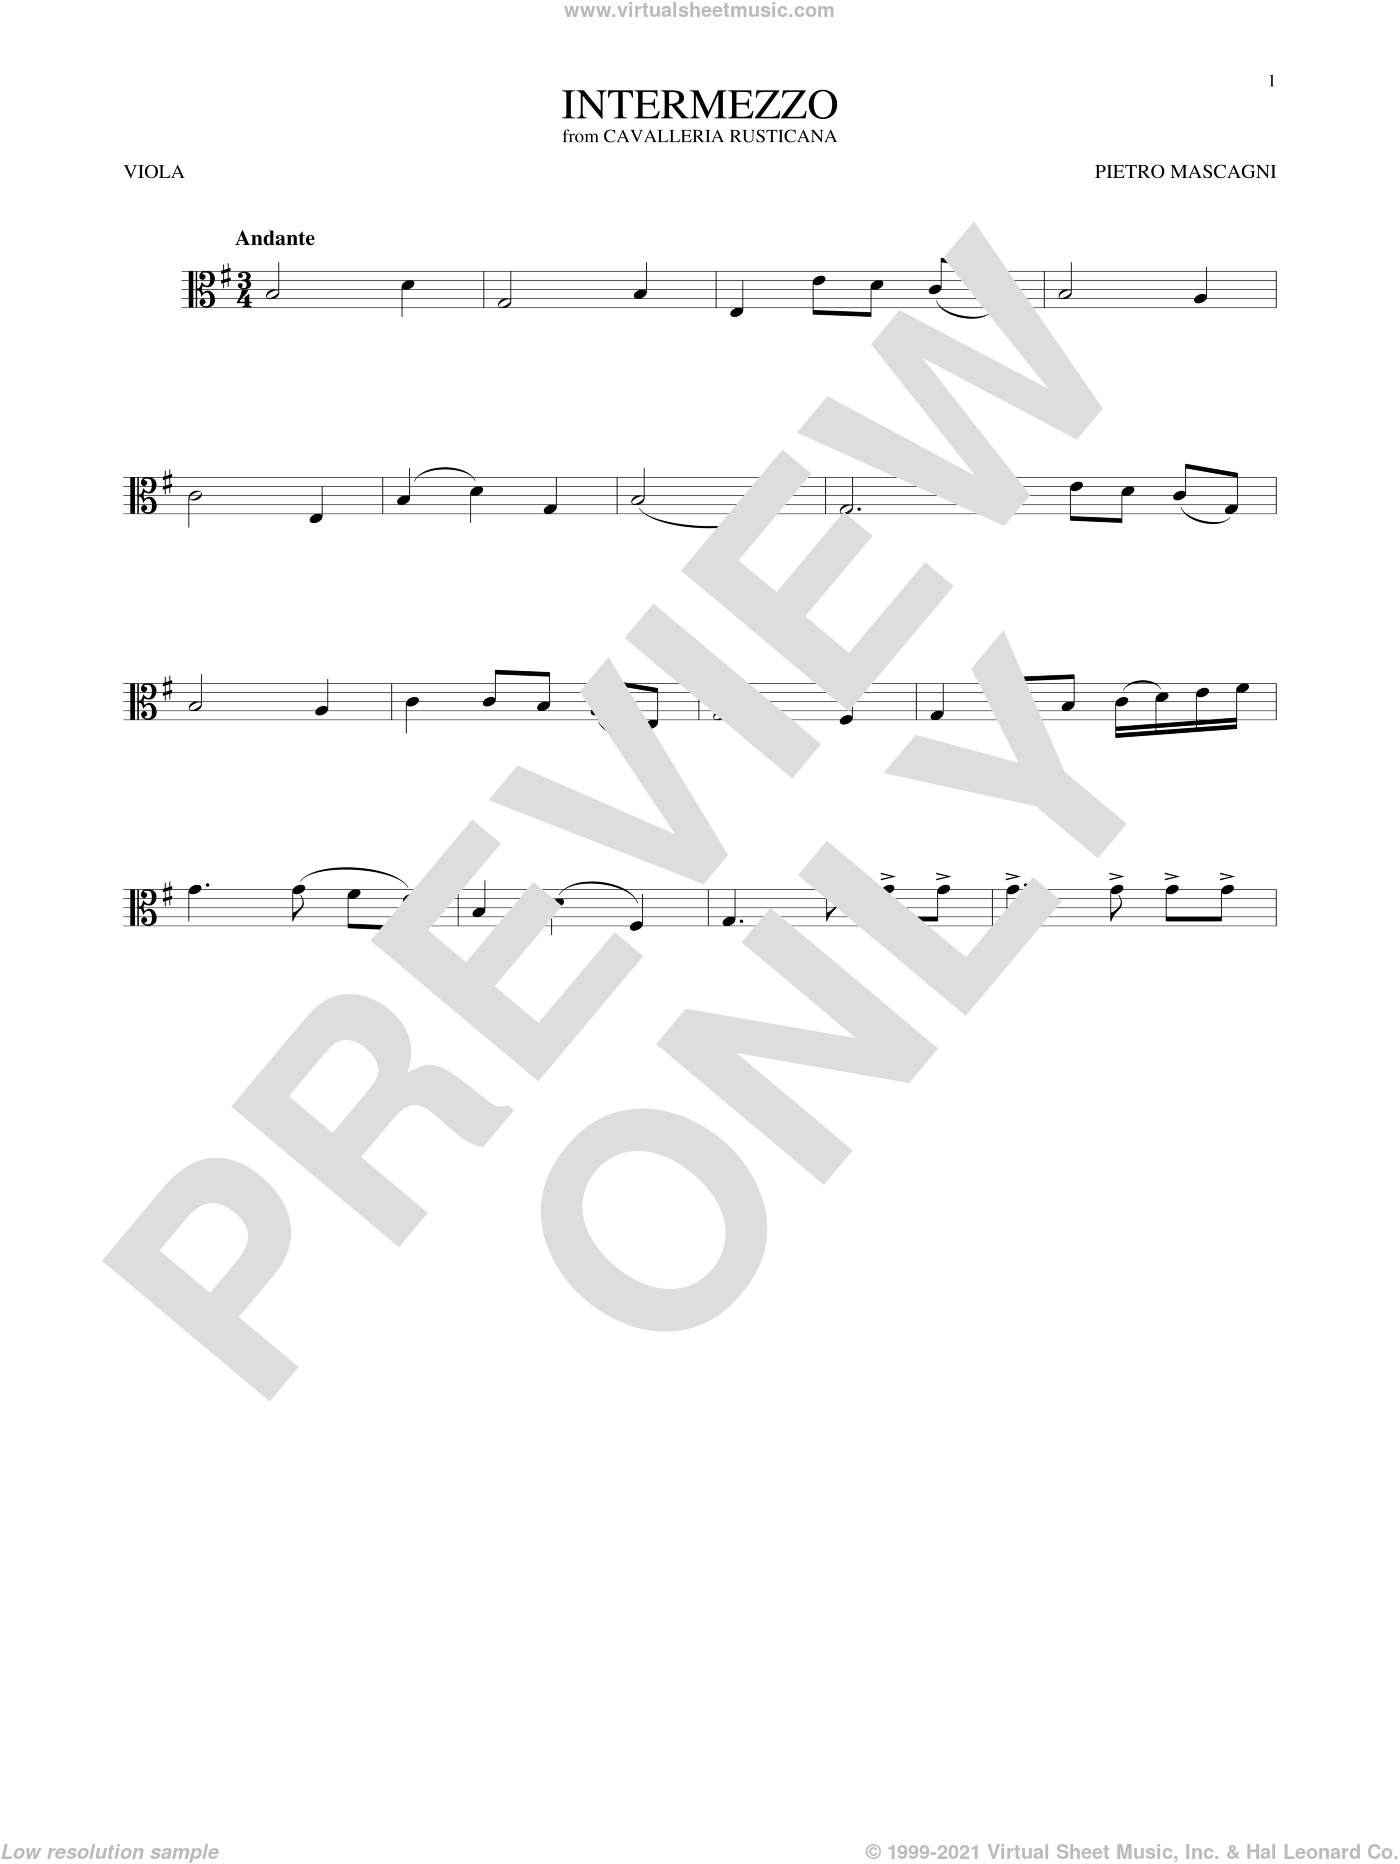 Intermezzo sheet music for viola solo by Pietro Mascagni, classical score, intermediate skill level